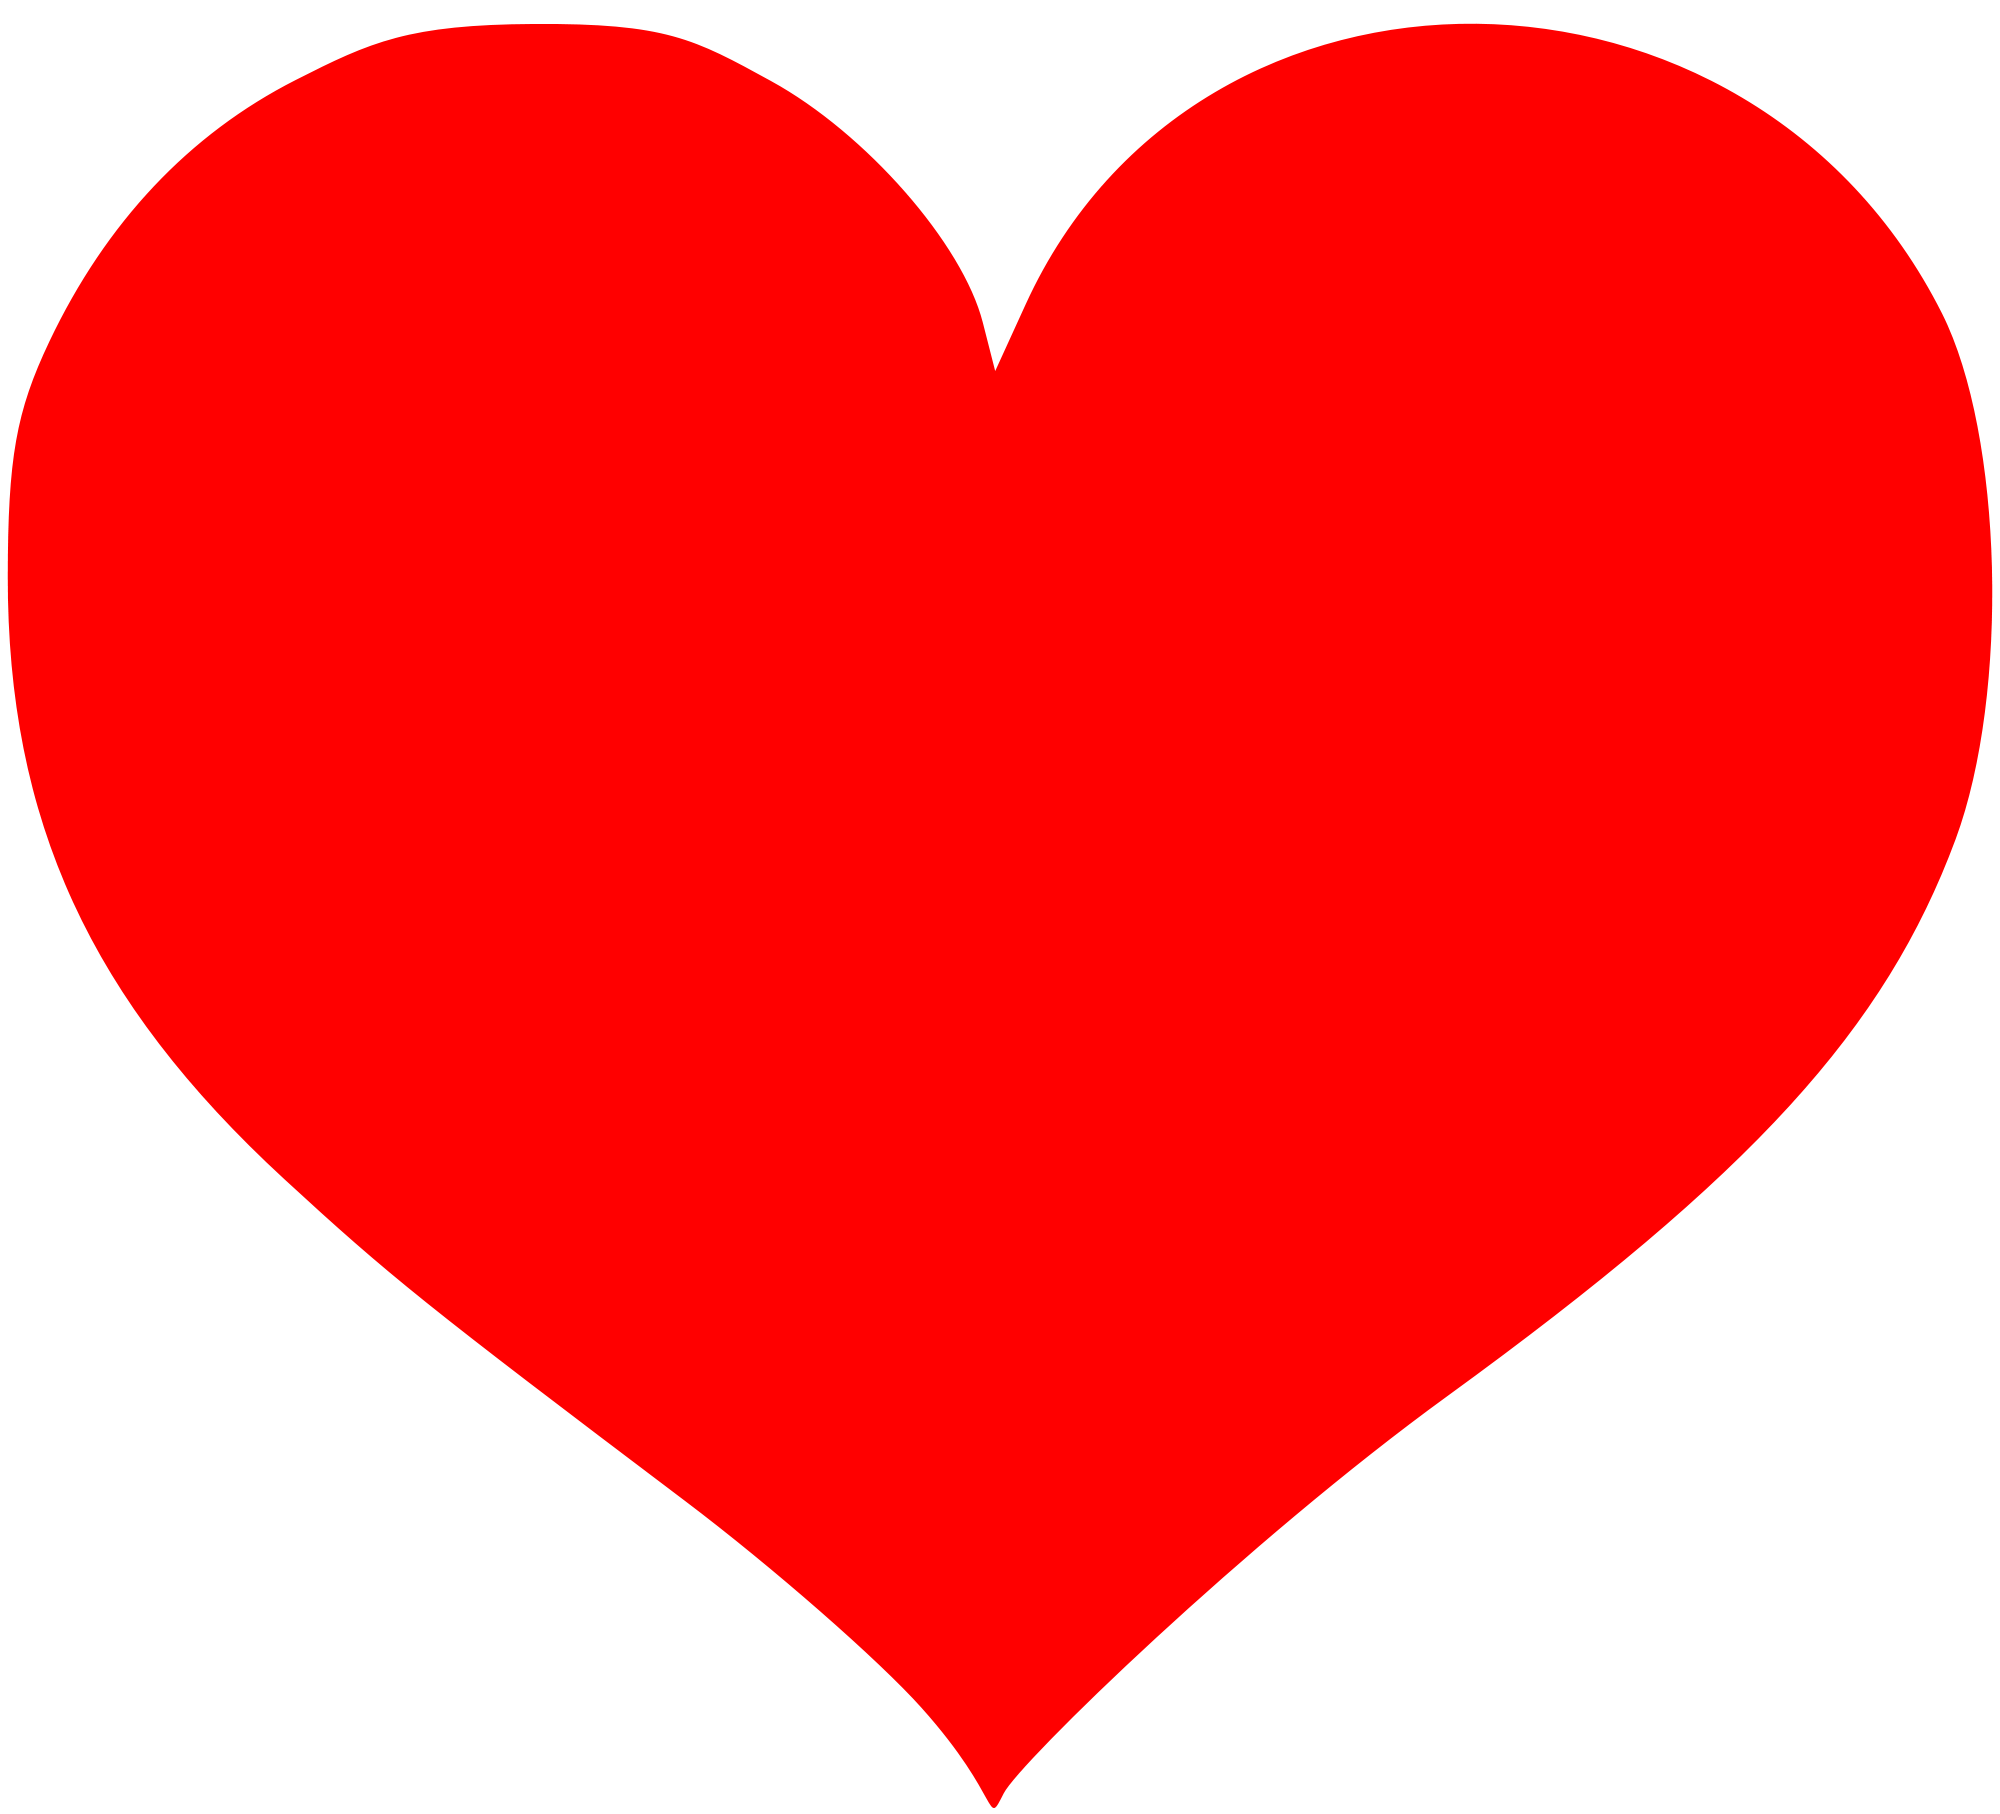 Heart pictures free icons. Hearts png transparent